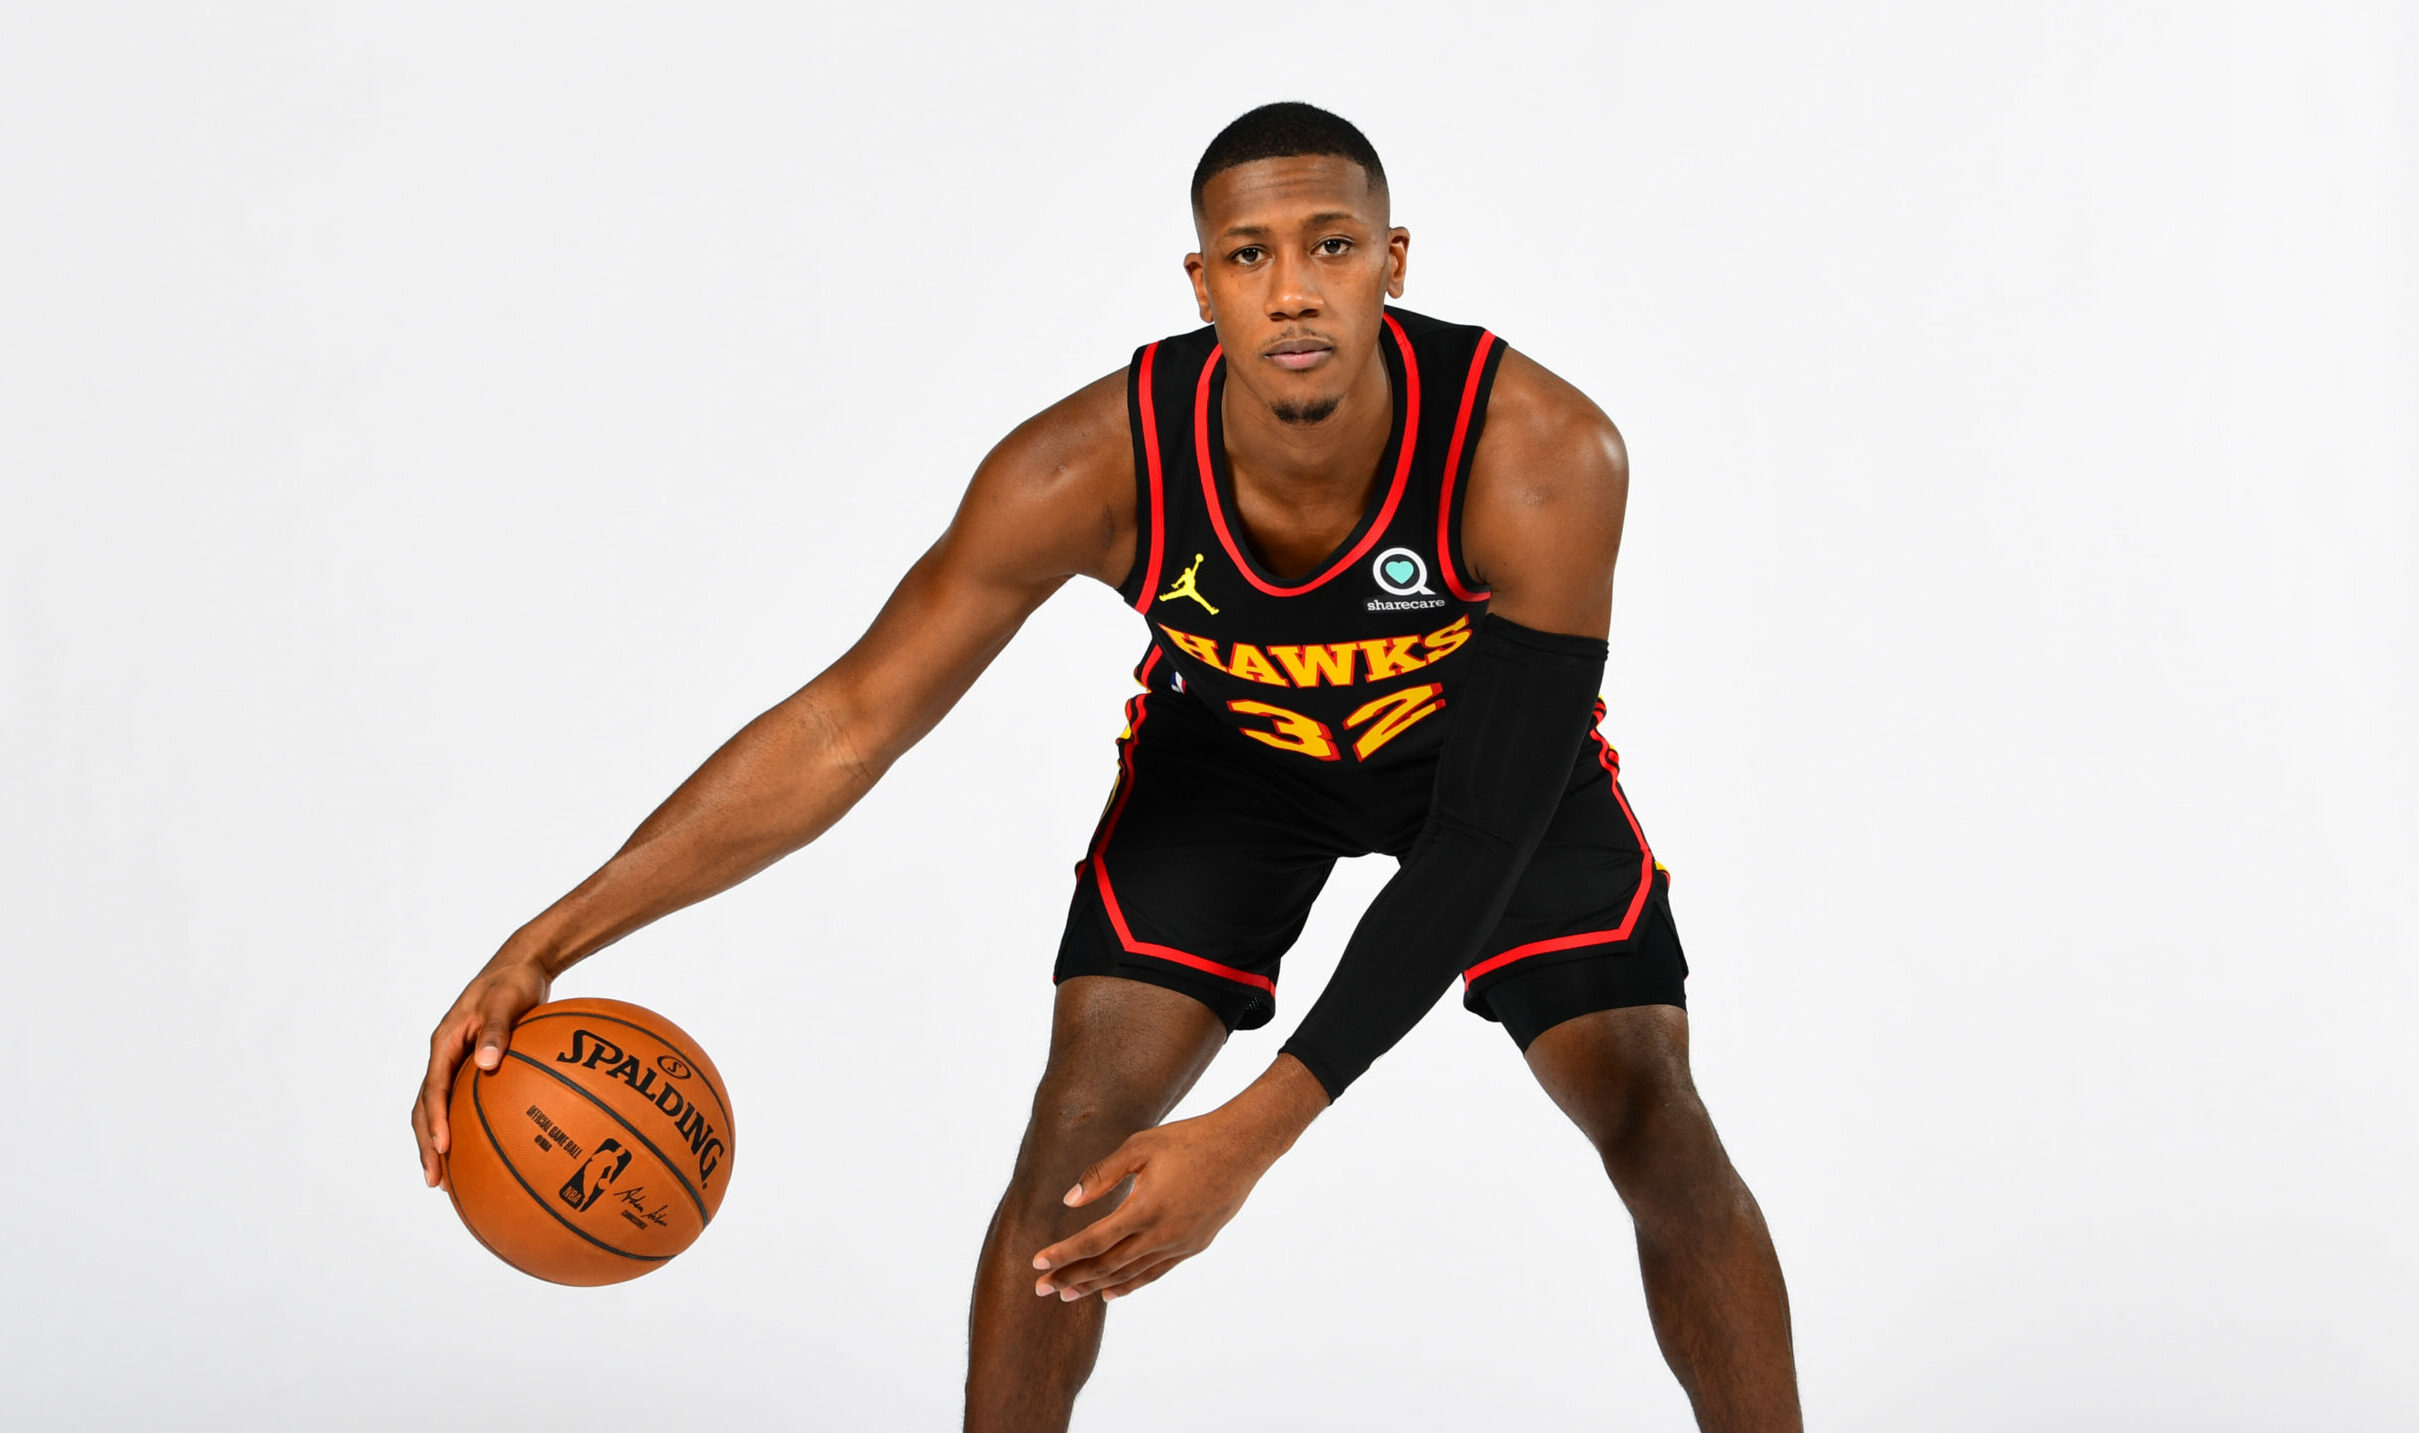 Hawks' Kris Dunn to rest 2 weeks after ankle surgery